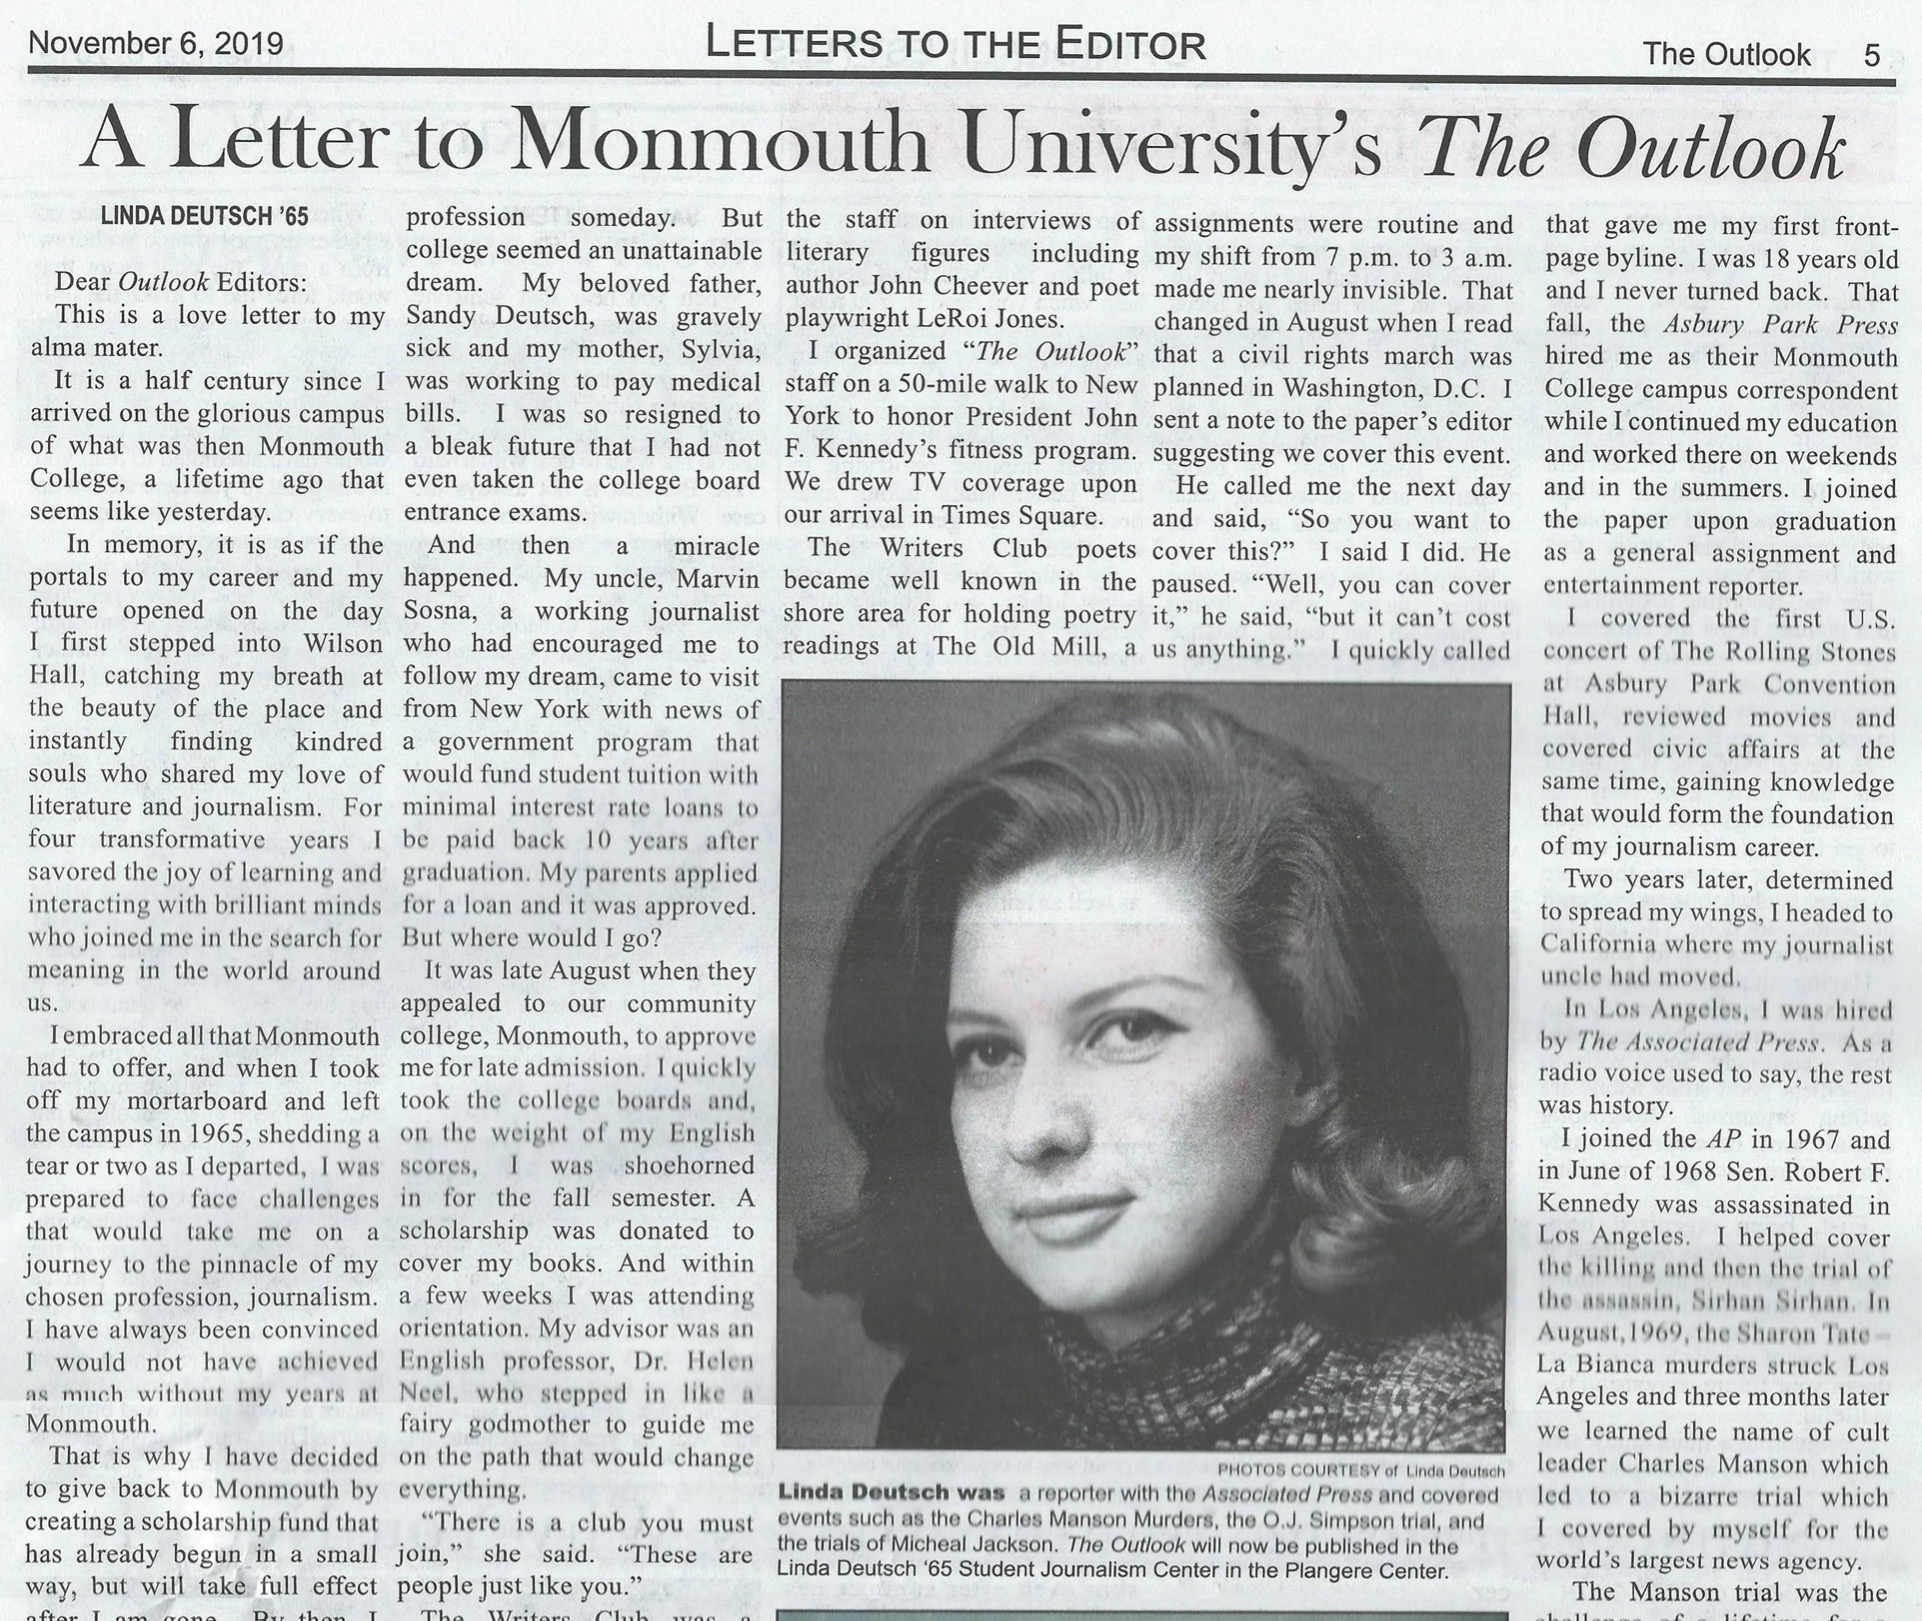 A Letter to Monmouth University